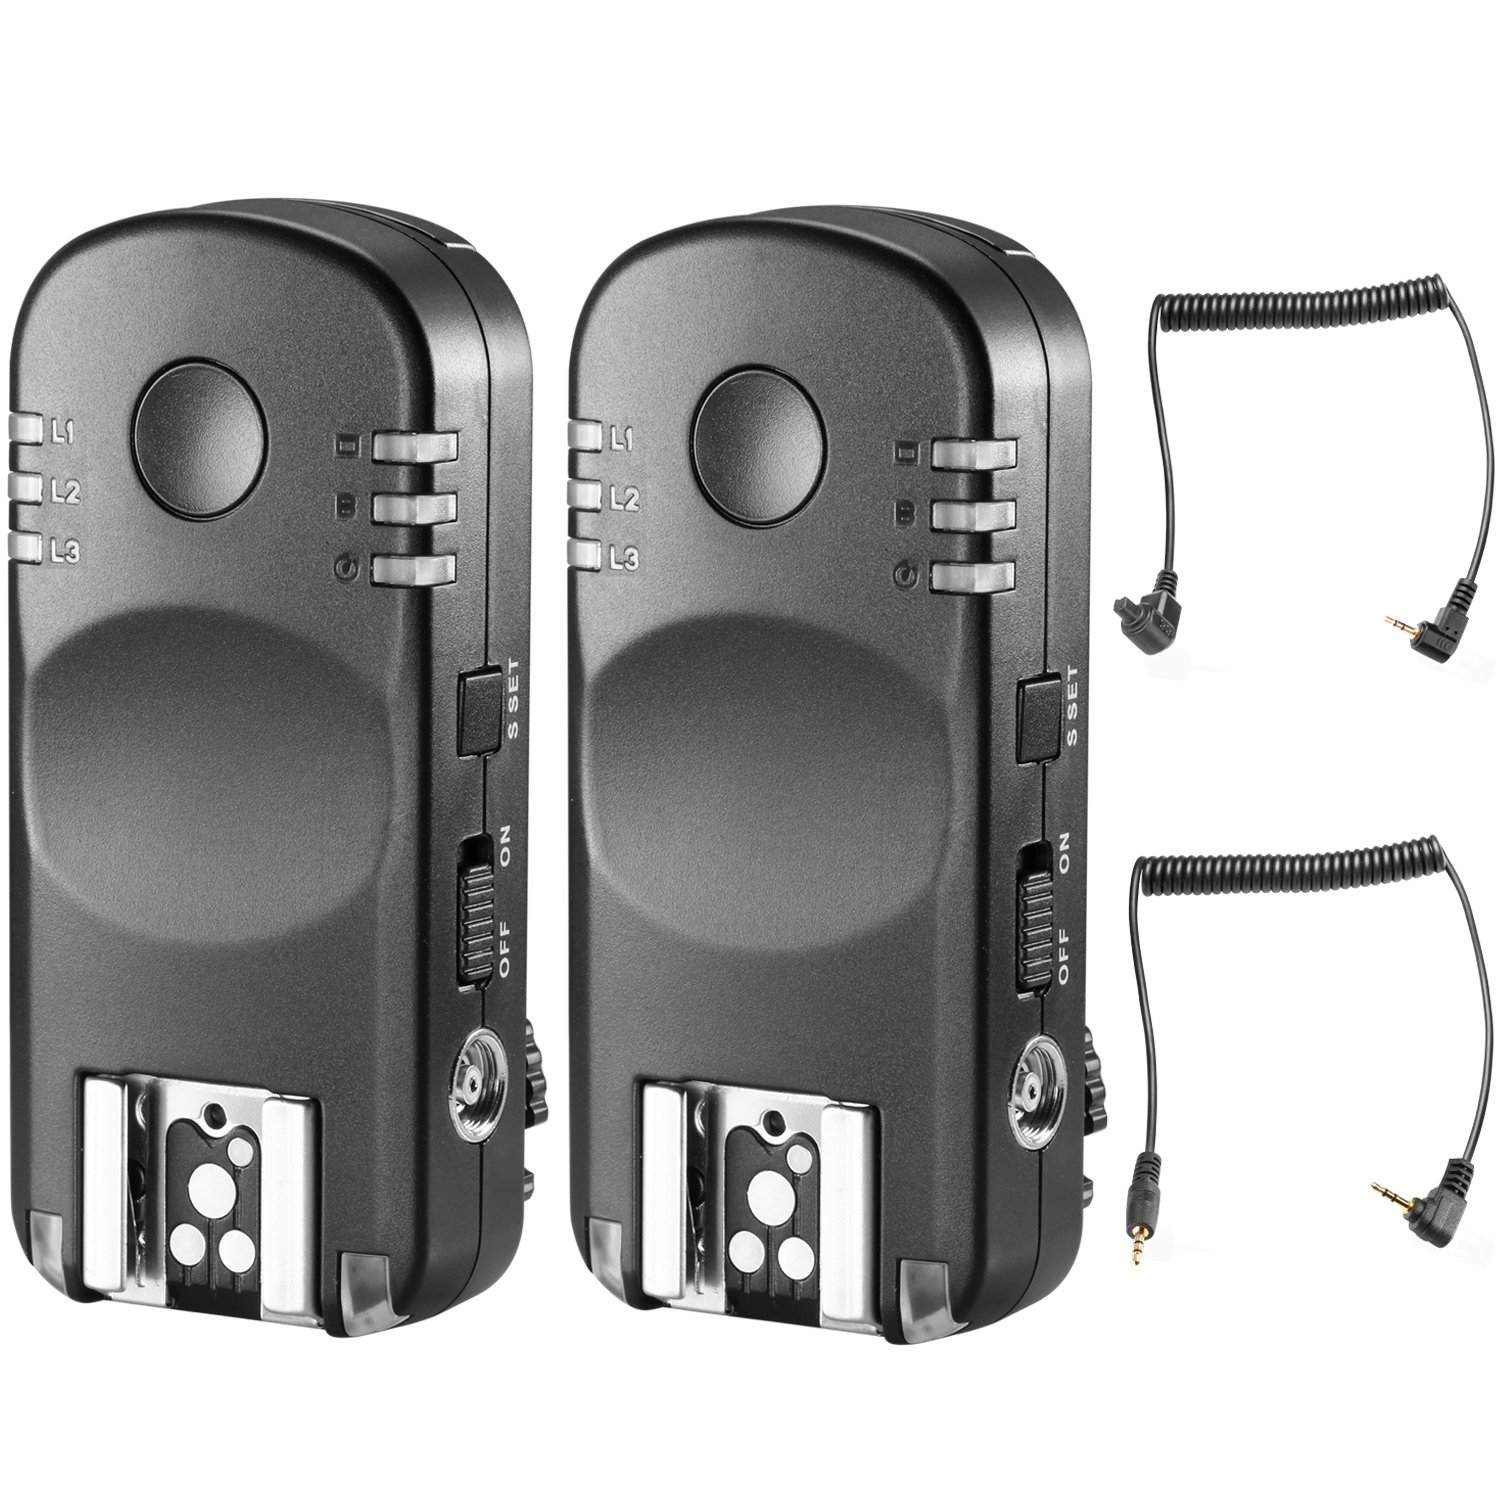 Neewer 2.4g Wireless Remote Flash Trigger Transceiver Pair.